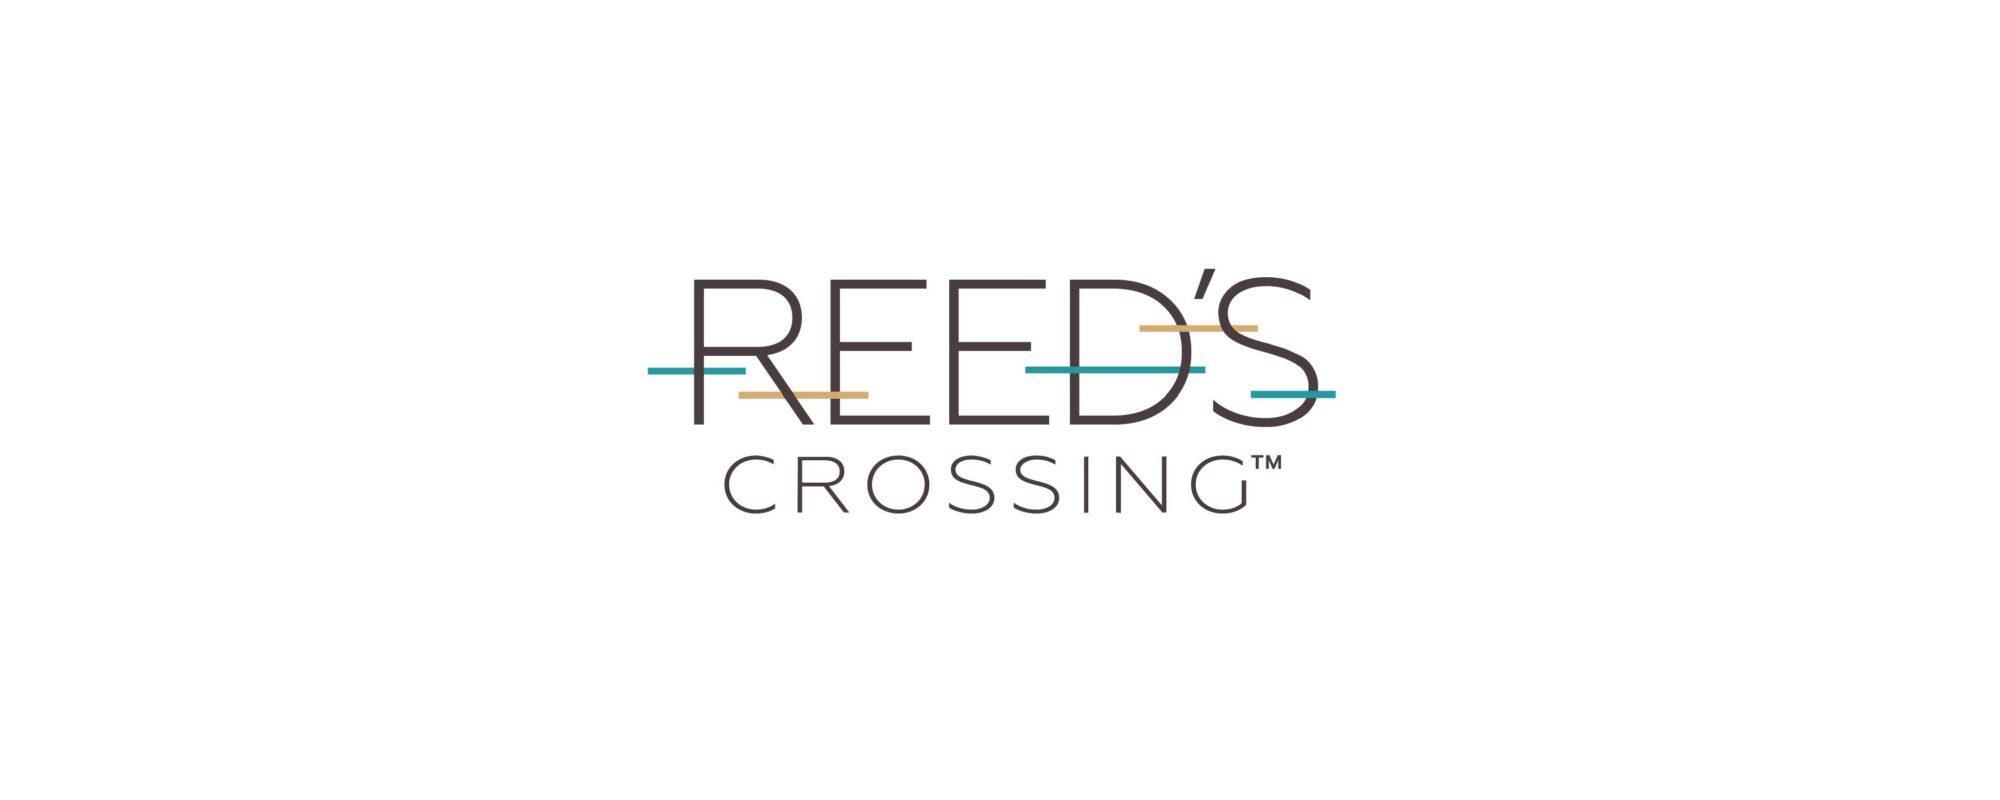 'Reed's Crossing' by Ichijo USA in Portland-Vancouver